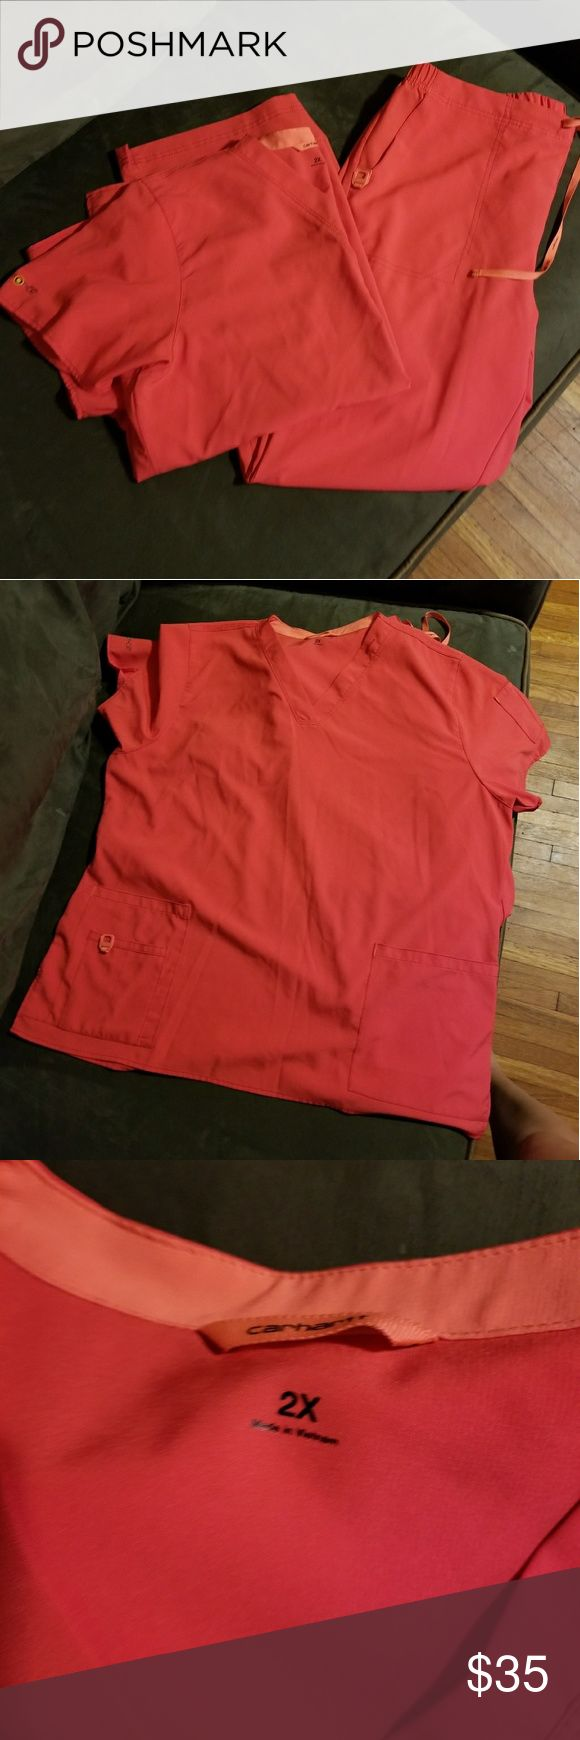 Carharrt scrub set Gorgeous coral carharrt scrub set. NWOT. just to big for me now due to losing weight. comfortable material. top is 2xl and bottoms are xl Carhartt Tops